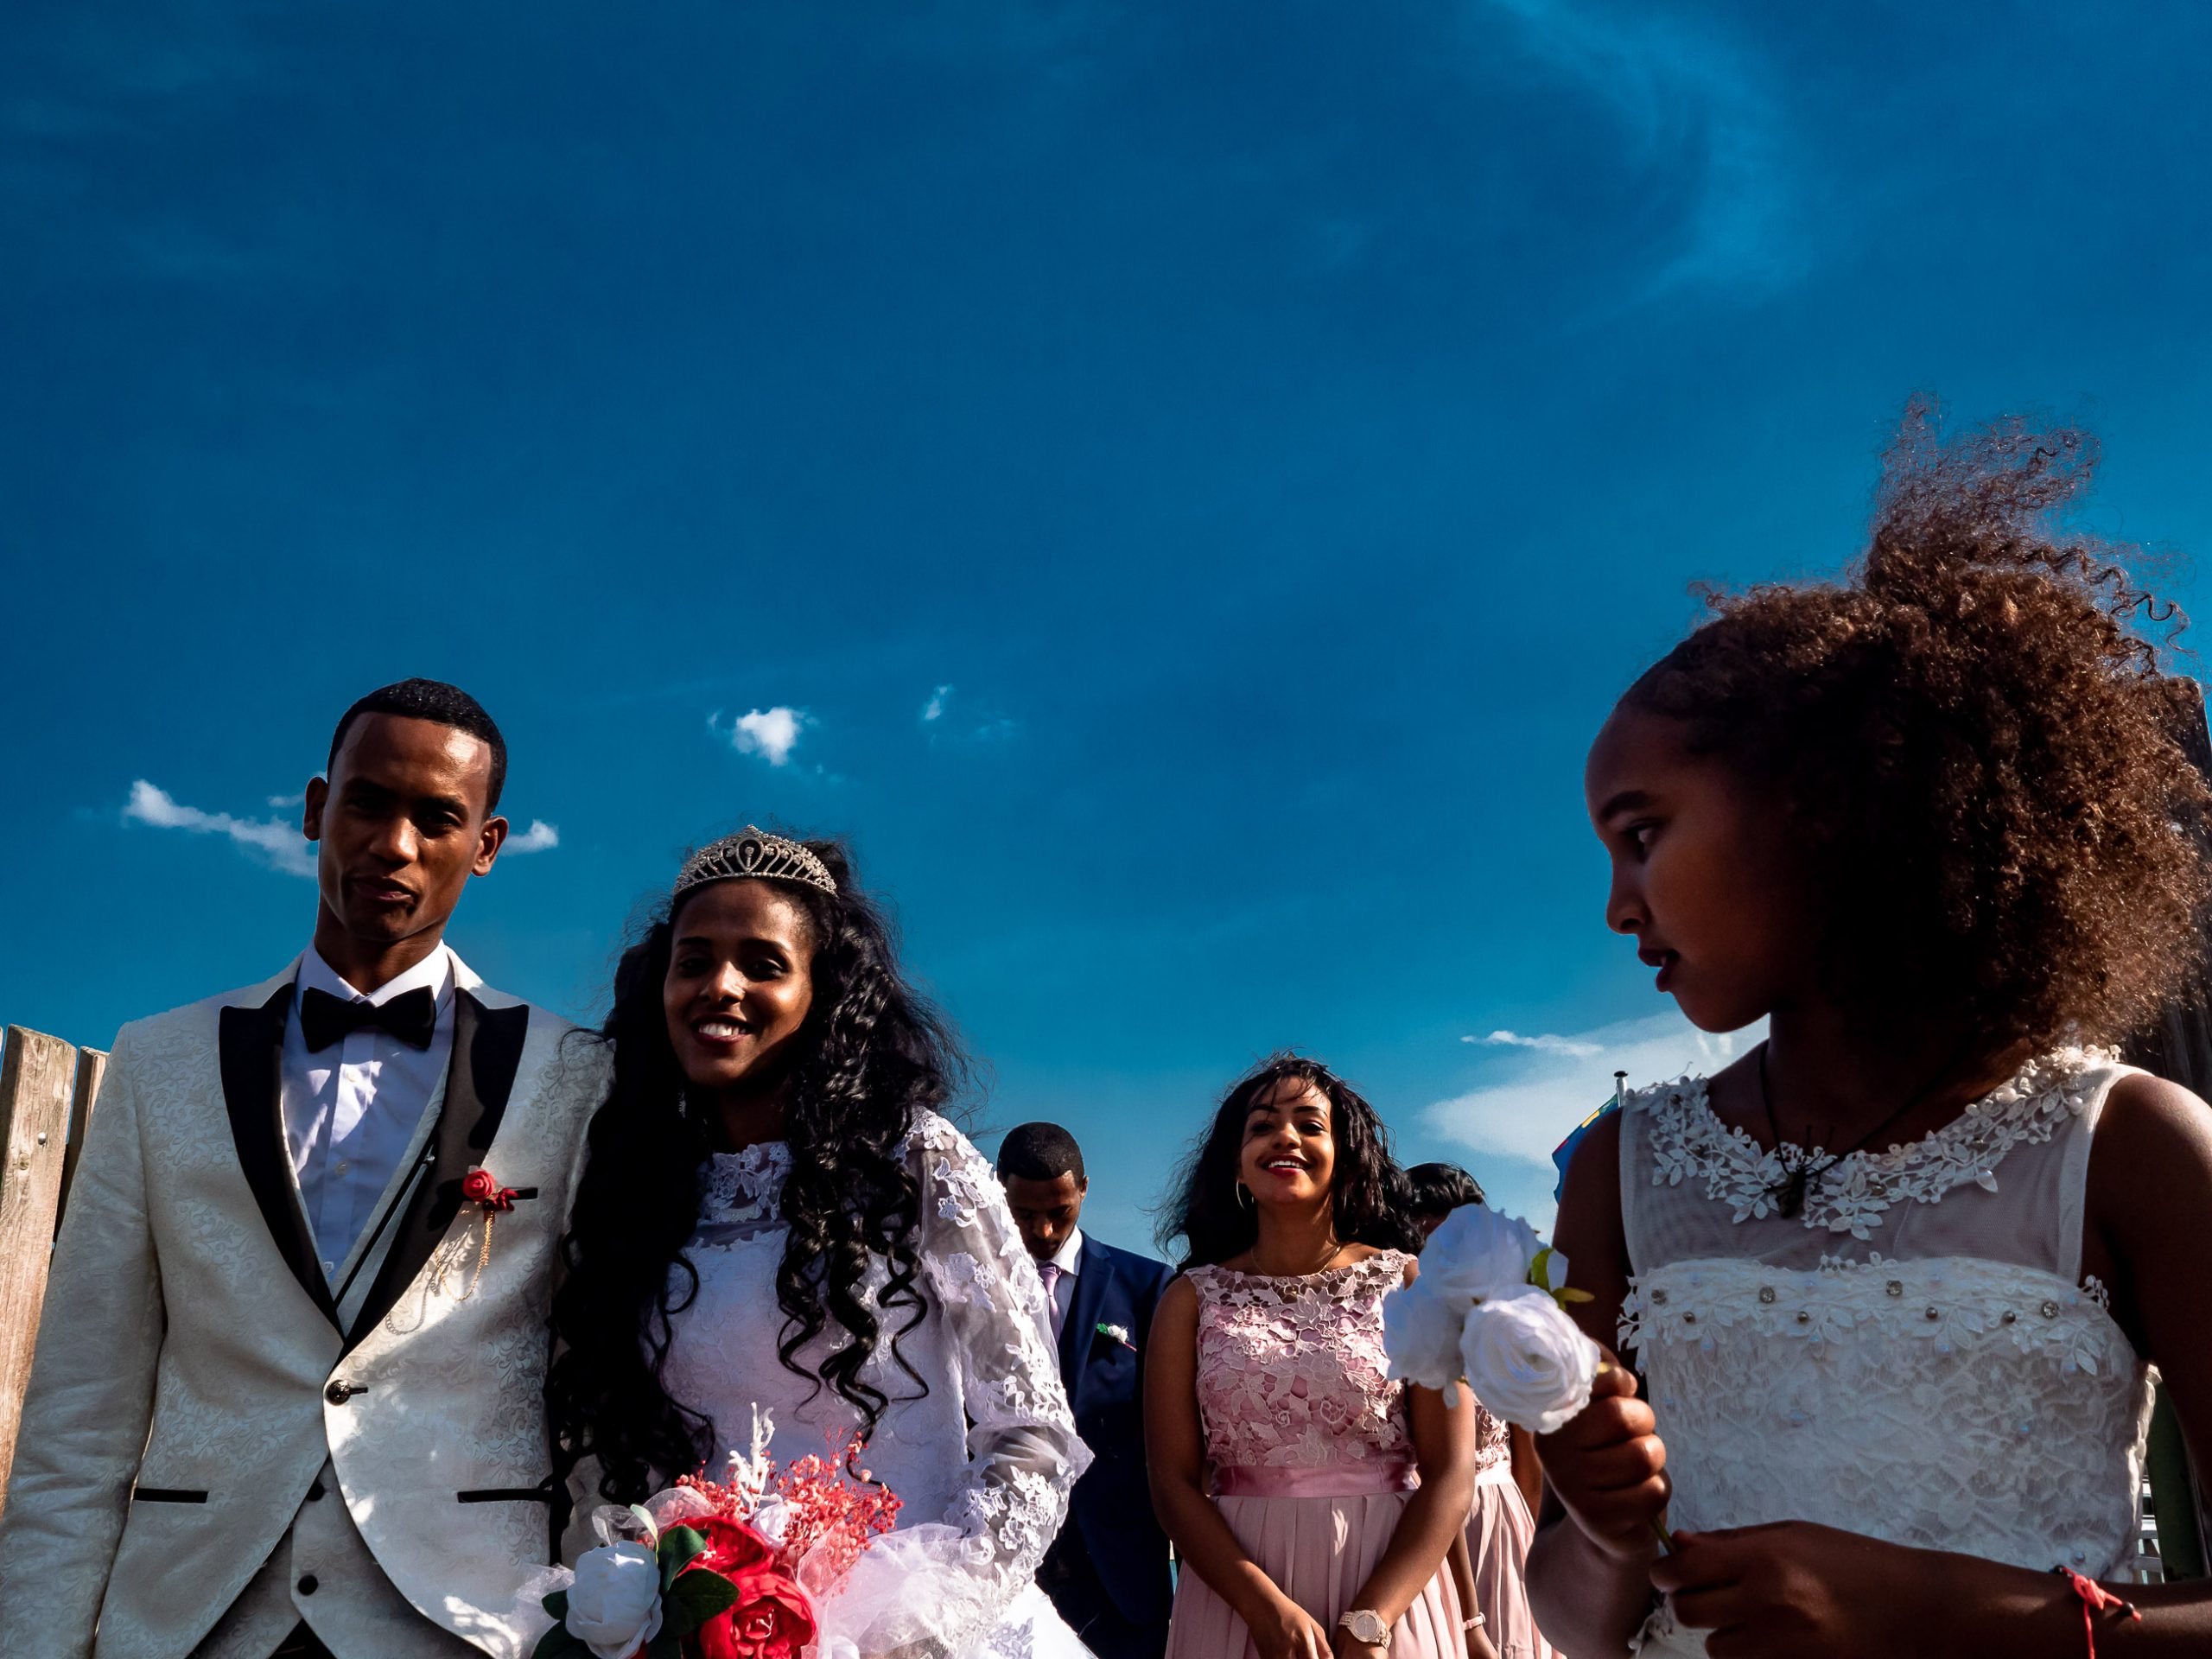 African wedding at the lake StarnbergPeople at the seafront of lake Starnberg in Bavaria Germany